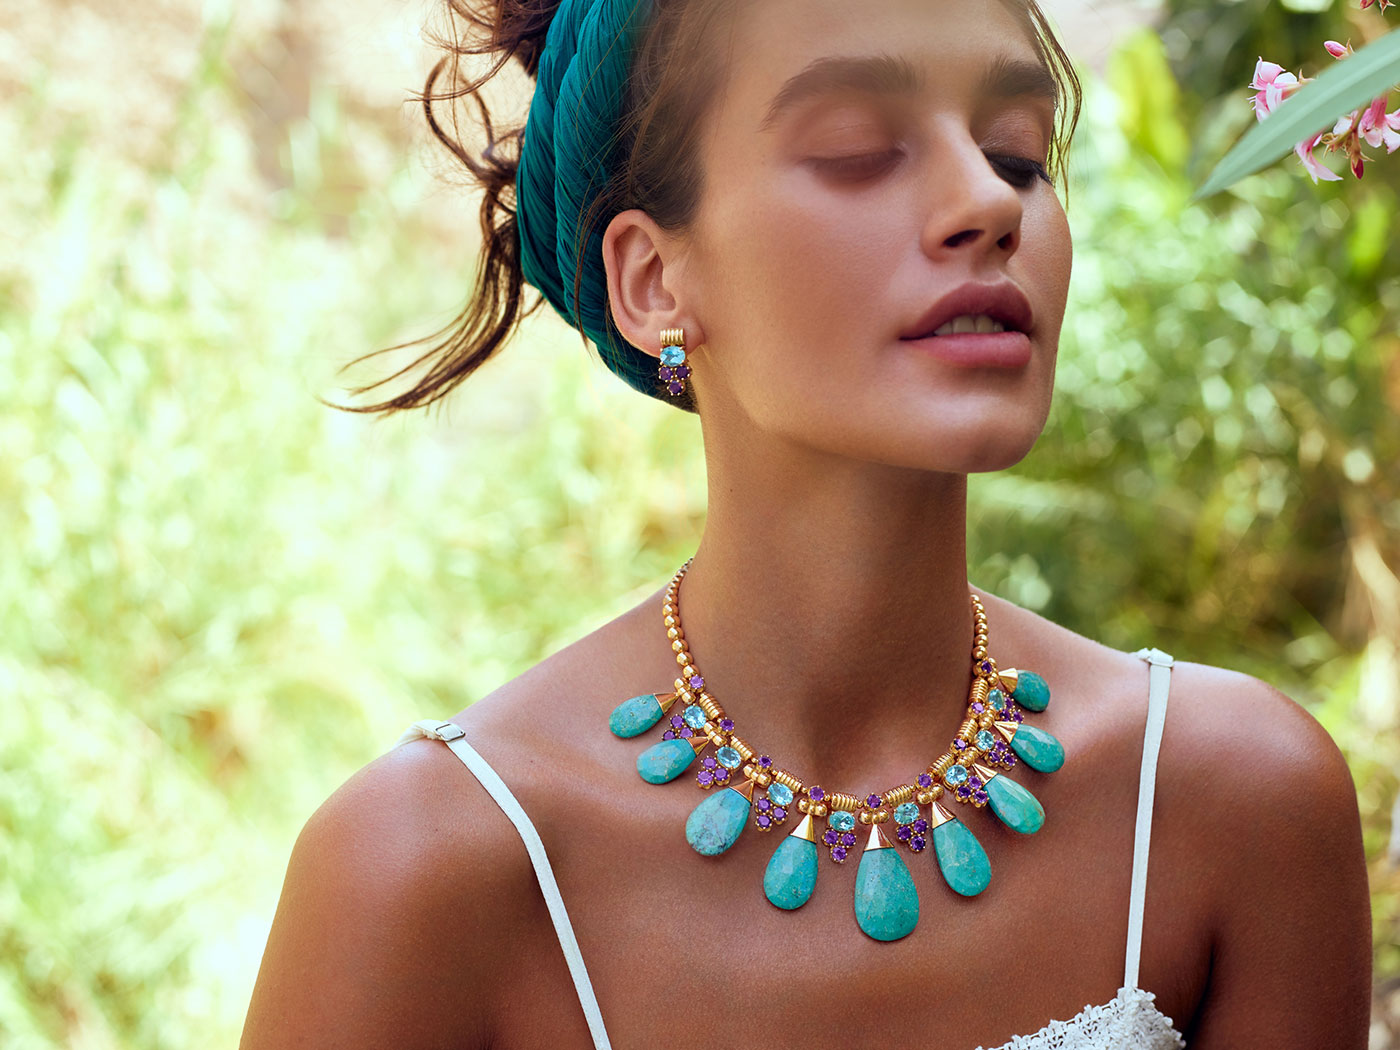 Azza Fahmy The Gypsy collection necklace with turquoise and earrings